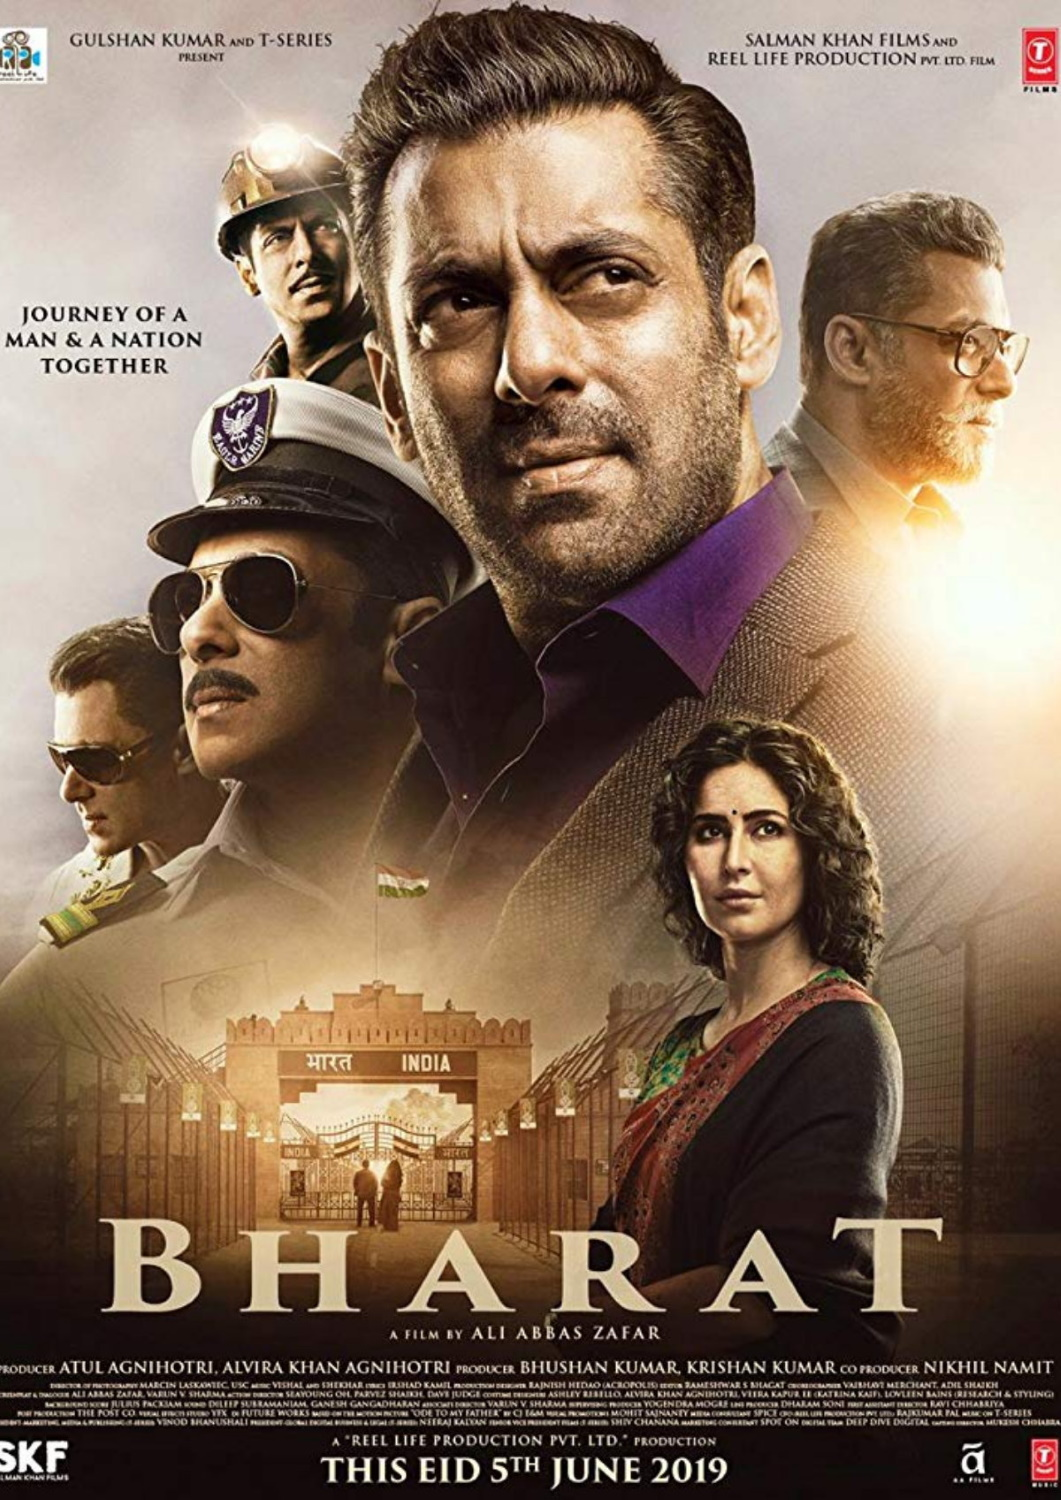 Bharat (2019)* - Whats After The Credits? | The Definitive